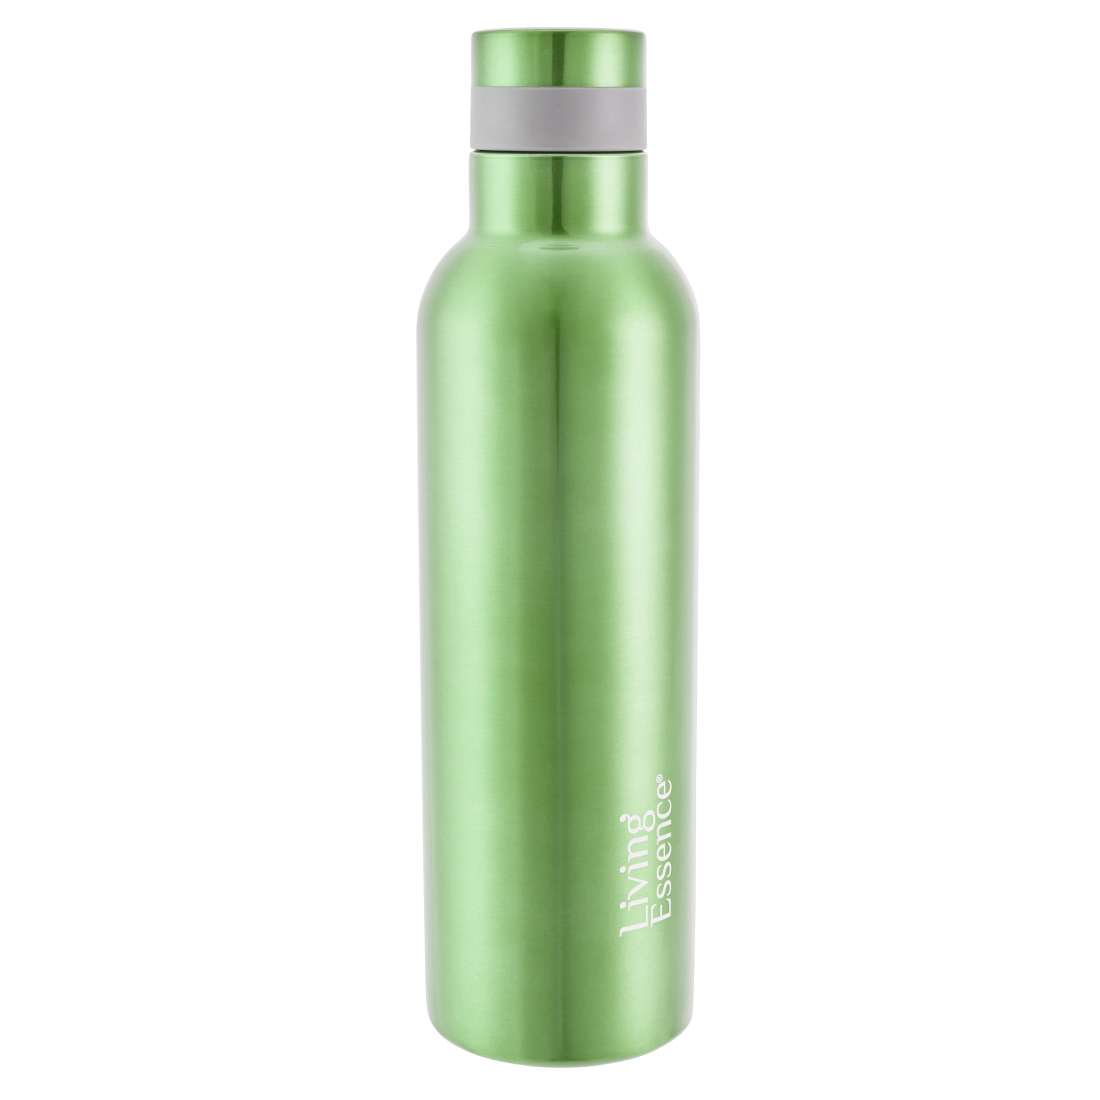 Rejuve Fridge Bottle in Green Colour by Living Essence